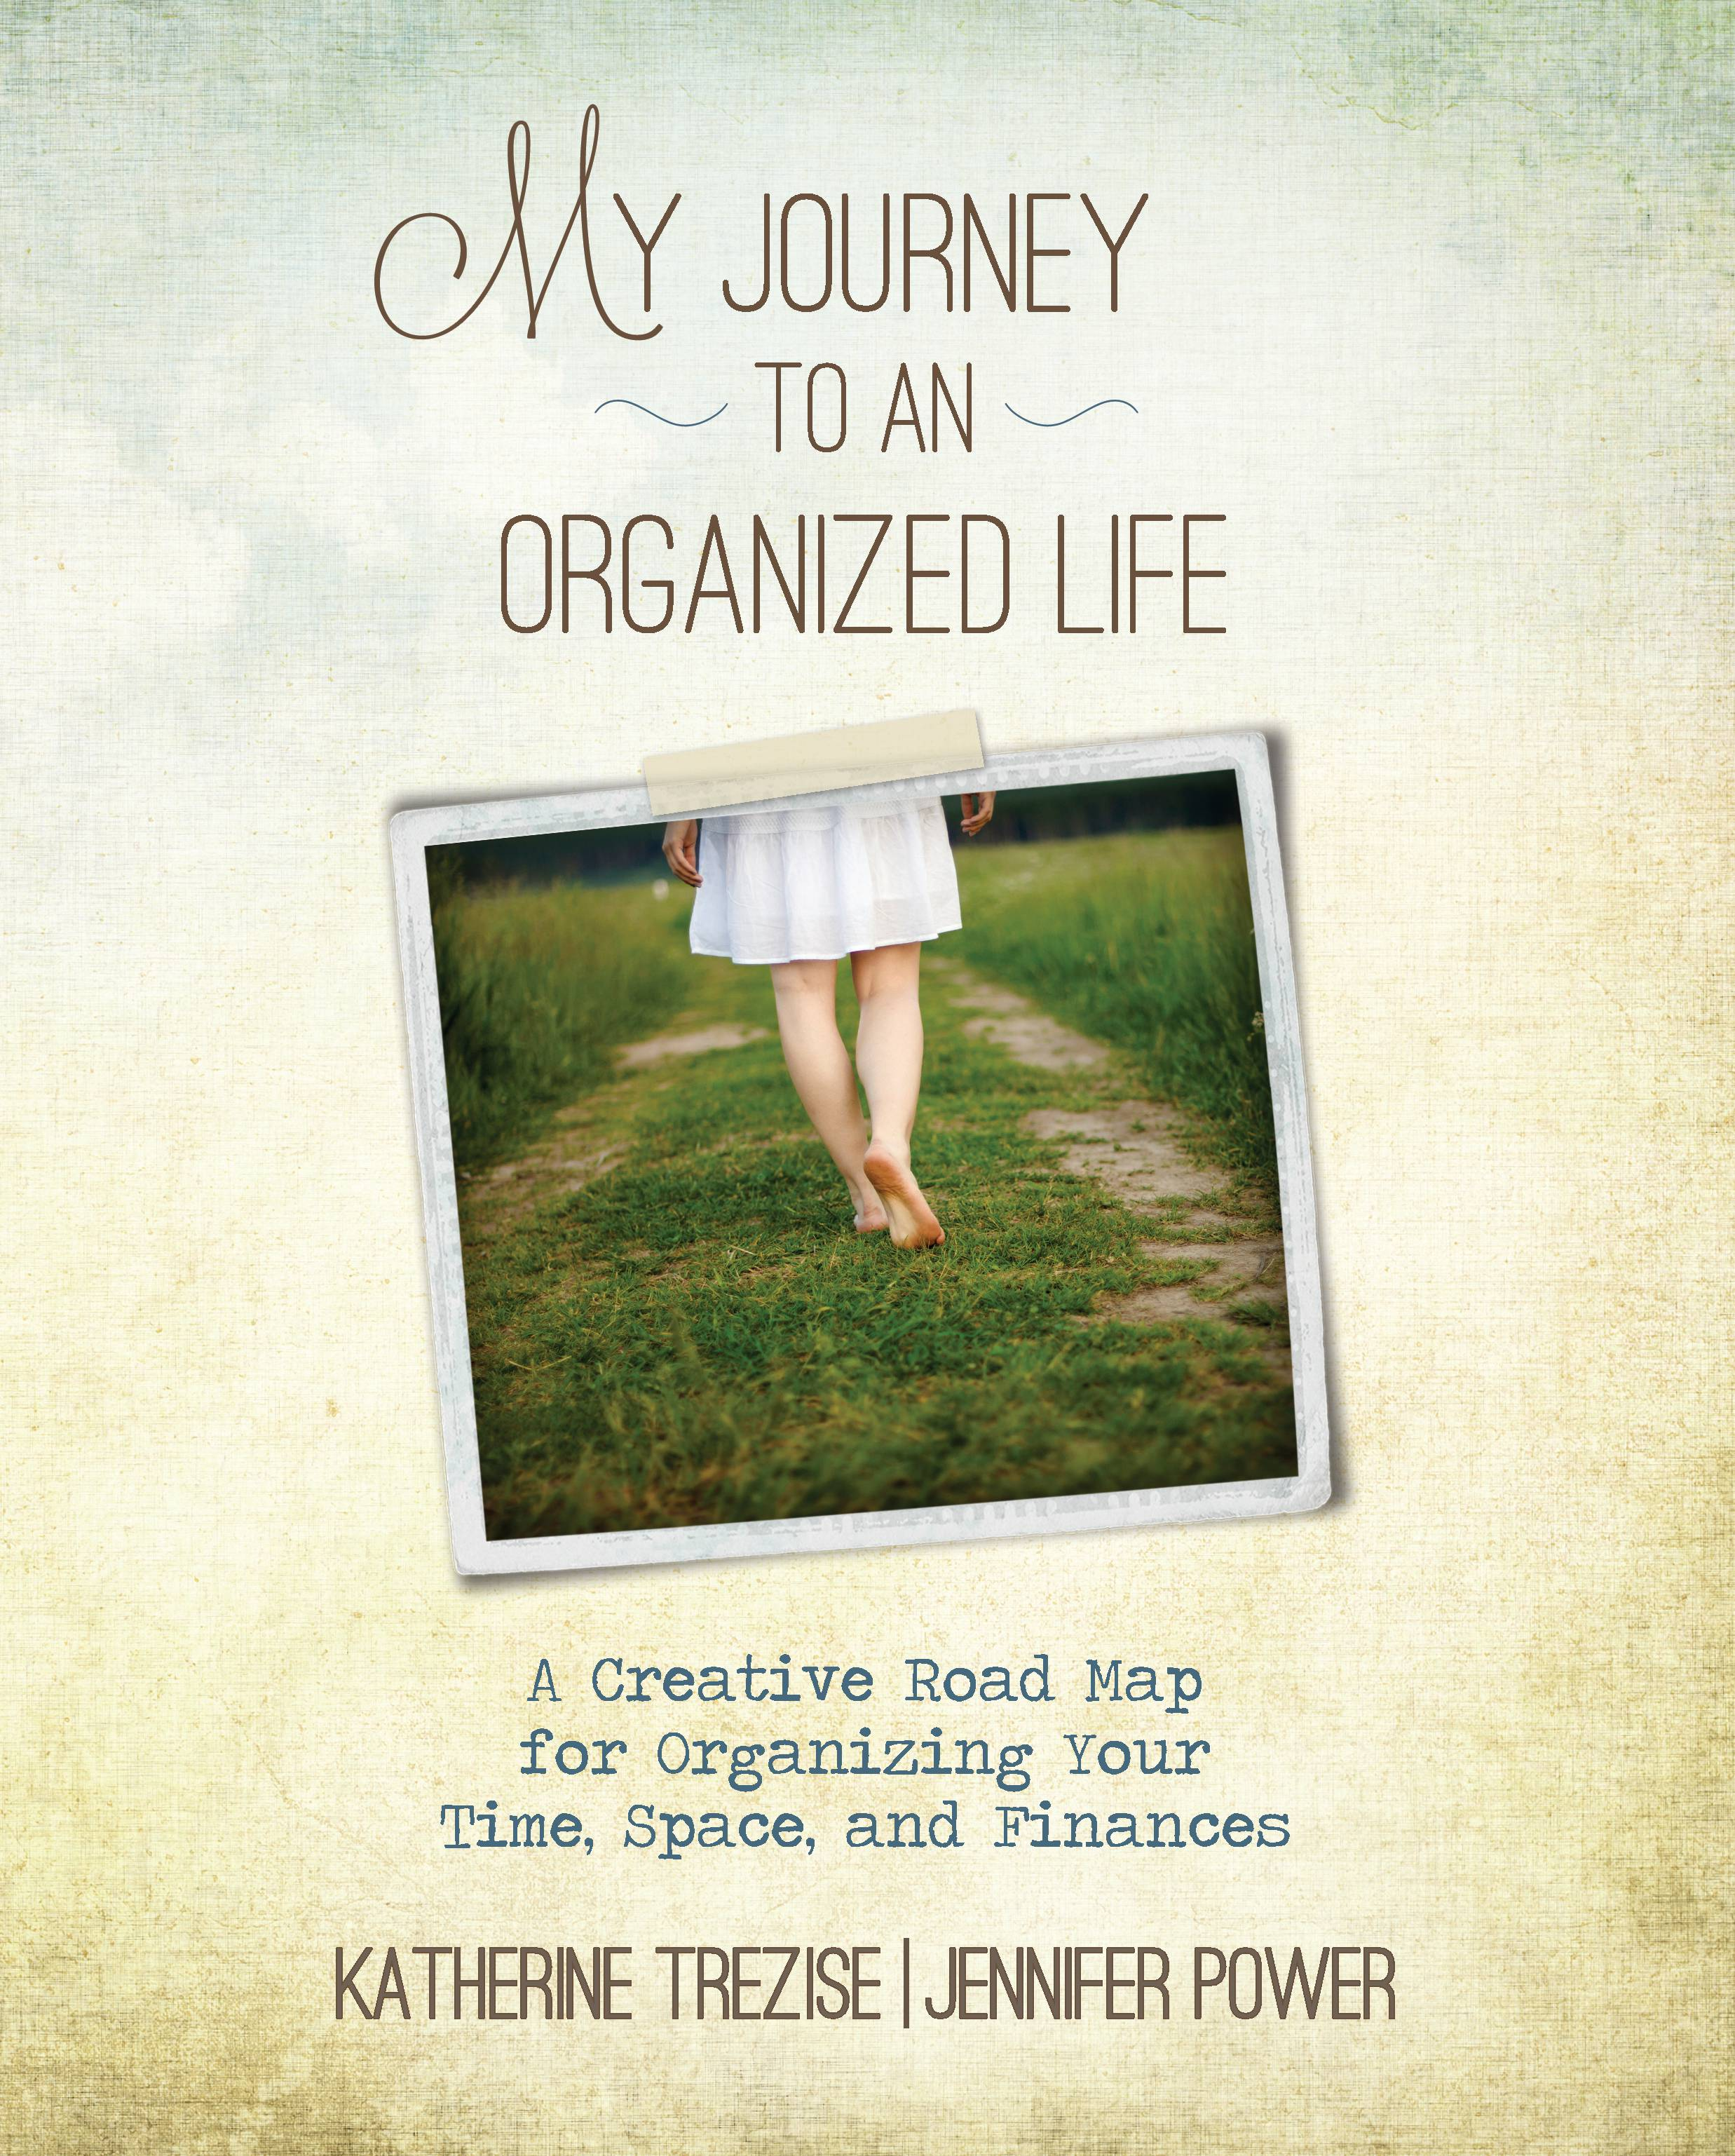 My Journey to an Organized Life by Katherine Trezise